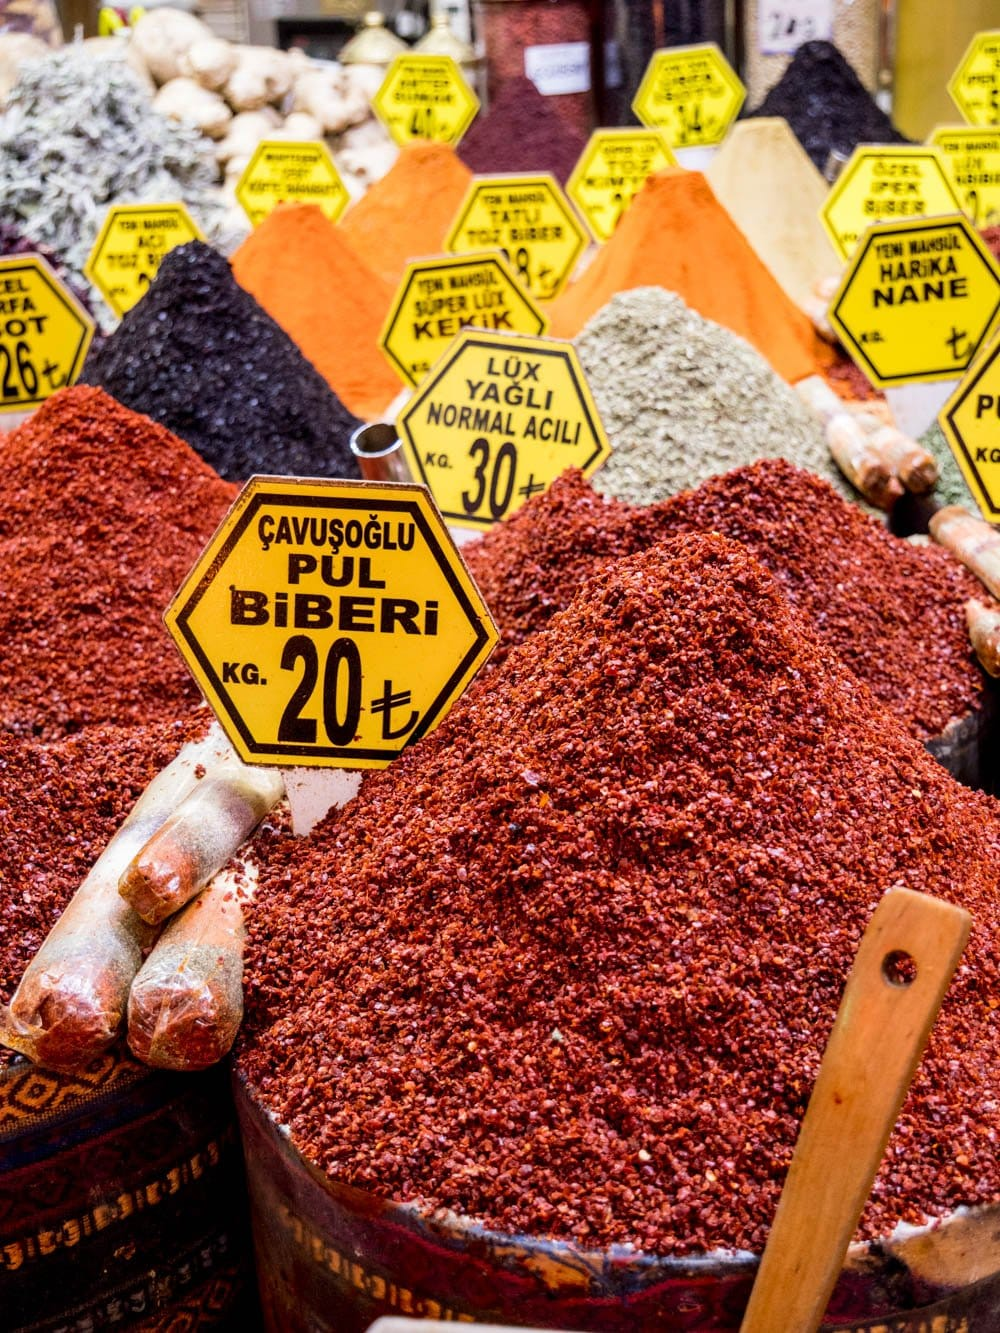 Turkish chili flakes (pul biber) from the Istanbul spice market (Misir carsisi) / A kitchen in Istanbul